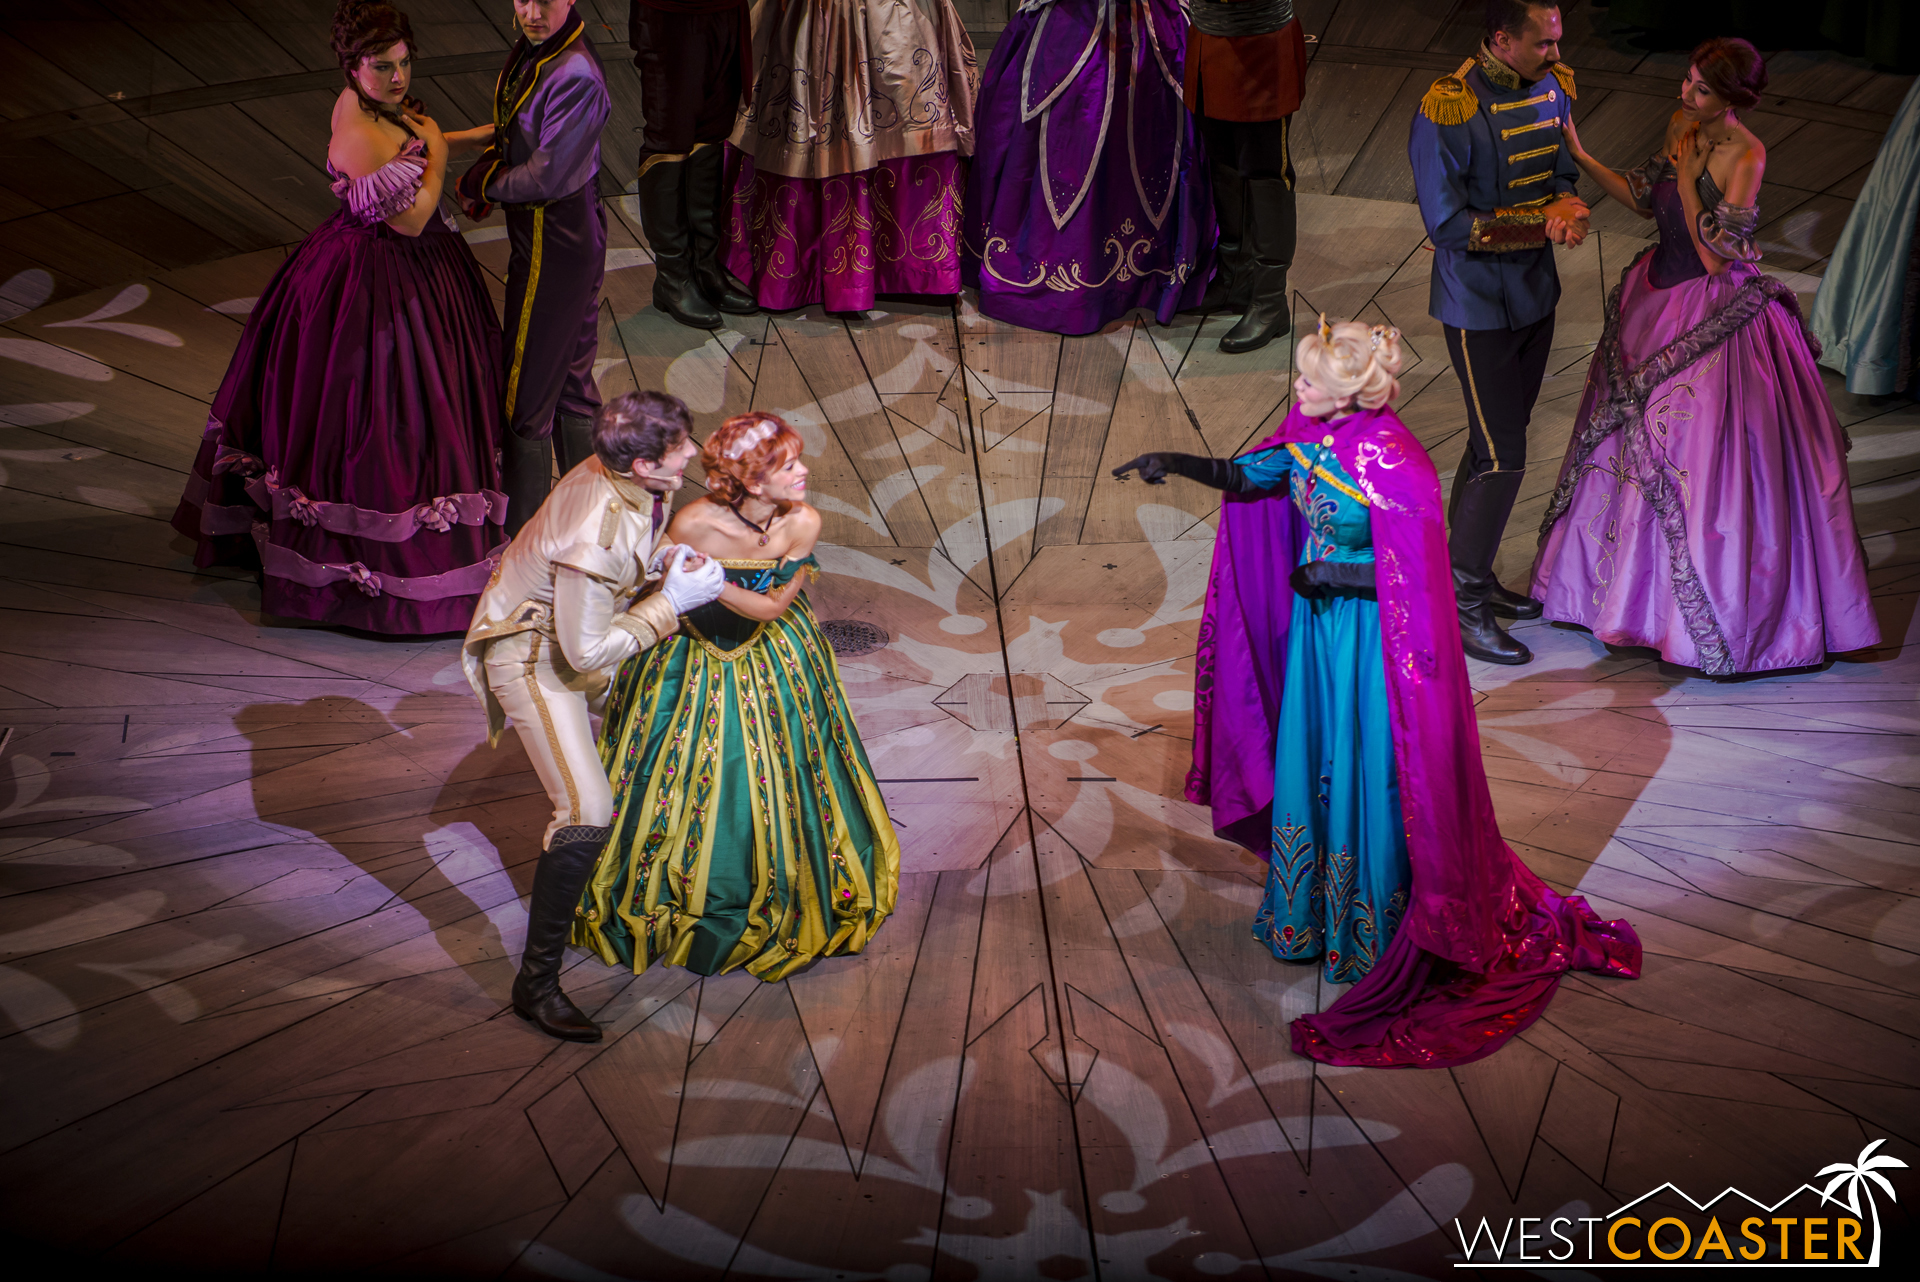 Hans and Anna call Elsa to hear of her decision.